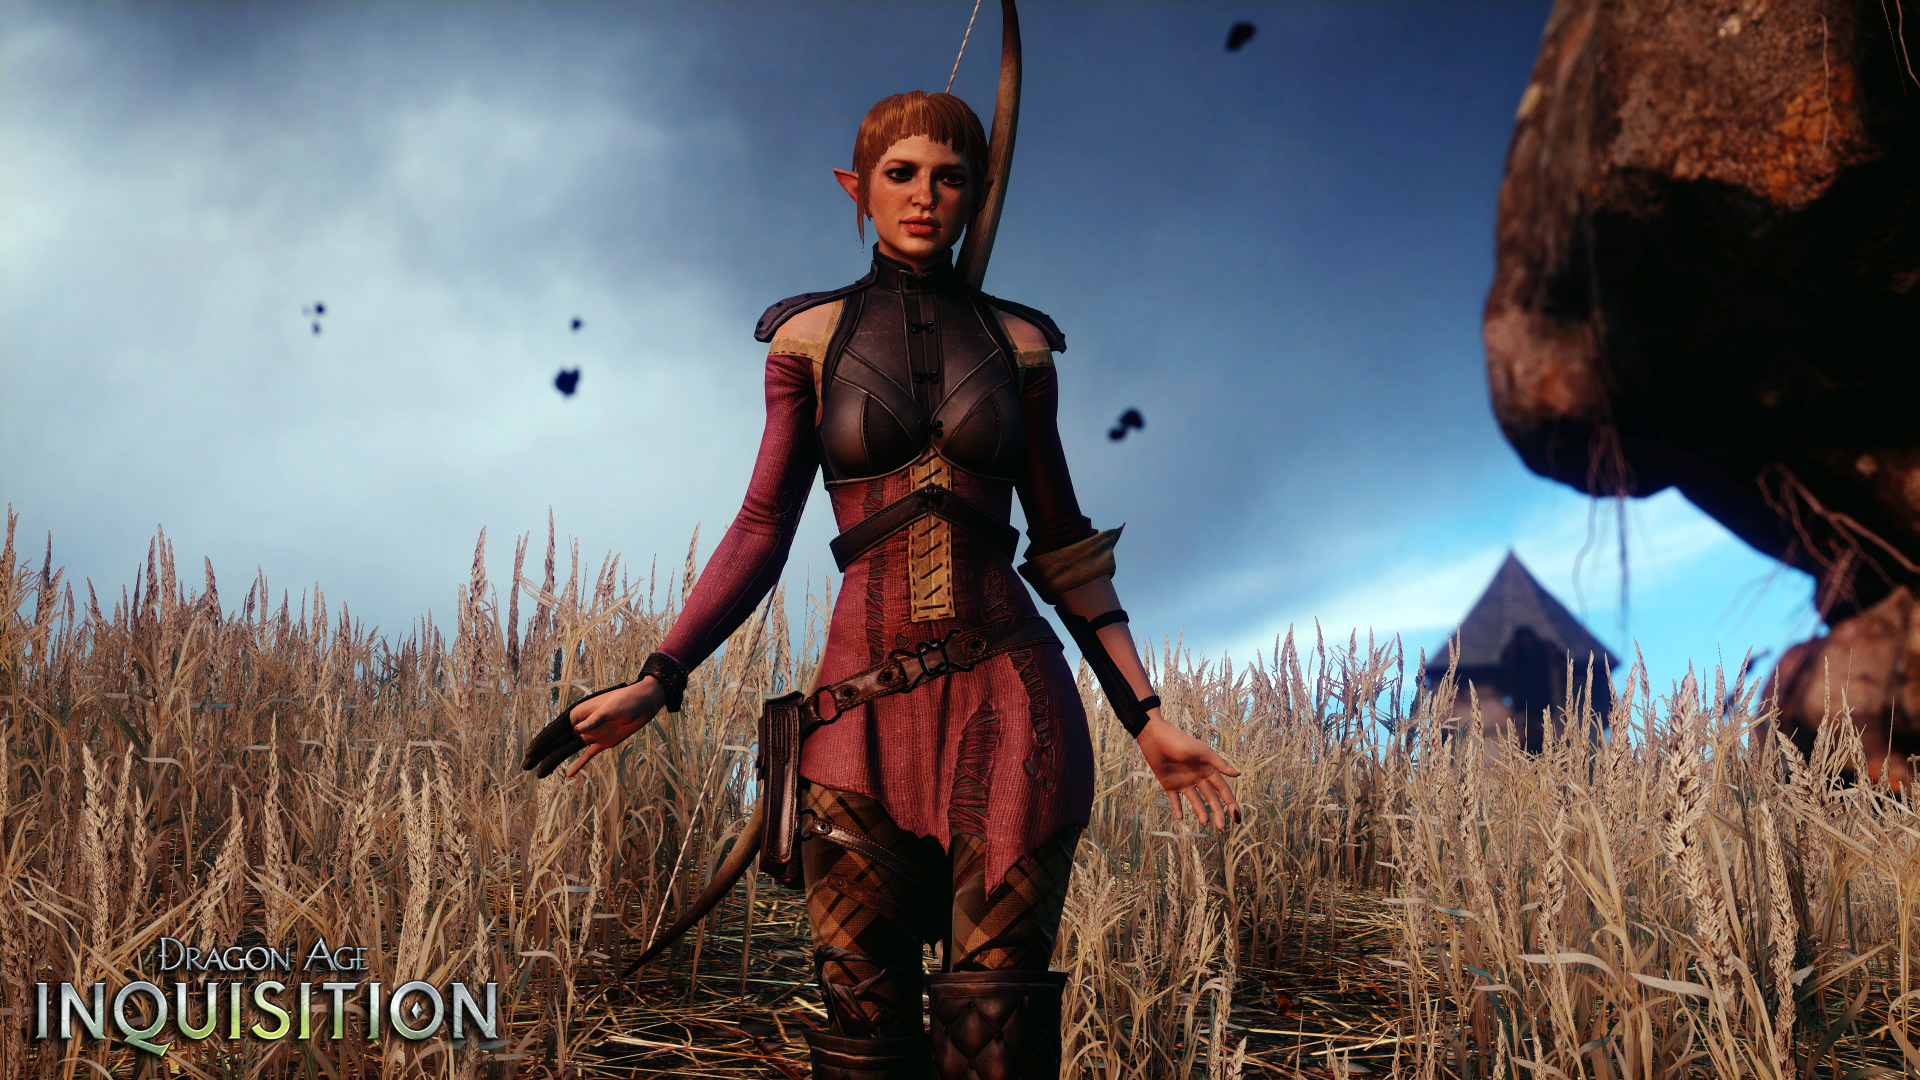 Dragon Age Inquisition s open world looks incredible in this raw gamepay foo